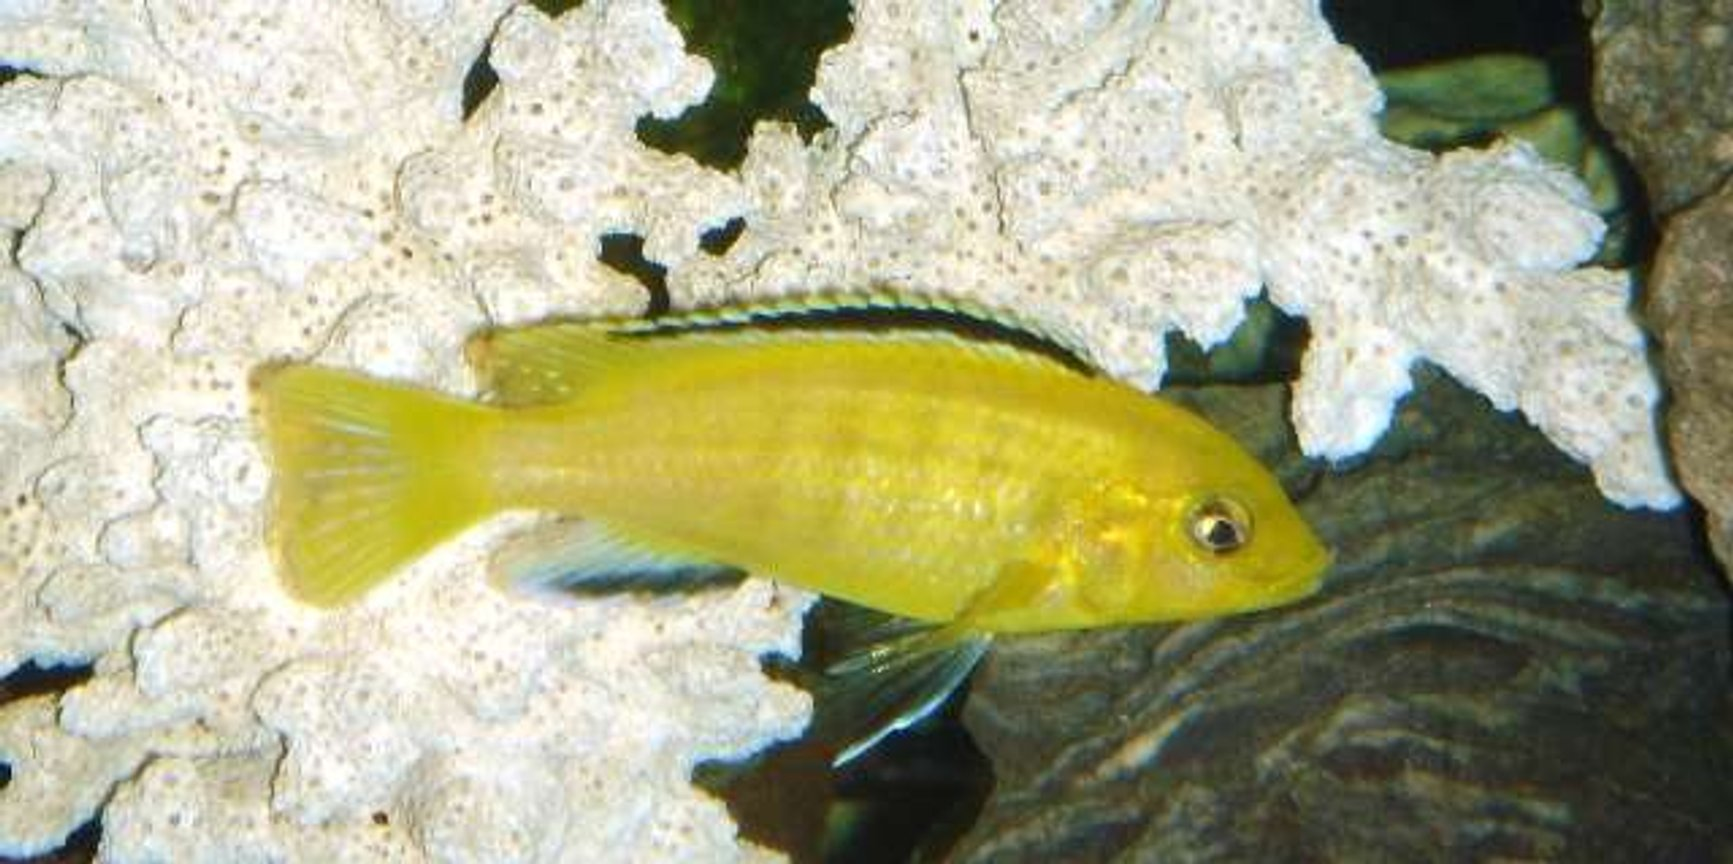 freshwater fish - labidochromis caeruleus - electric yellow cichlid stocking in 55 gallons tank - electric lab